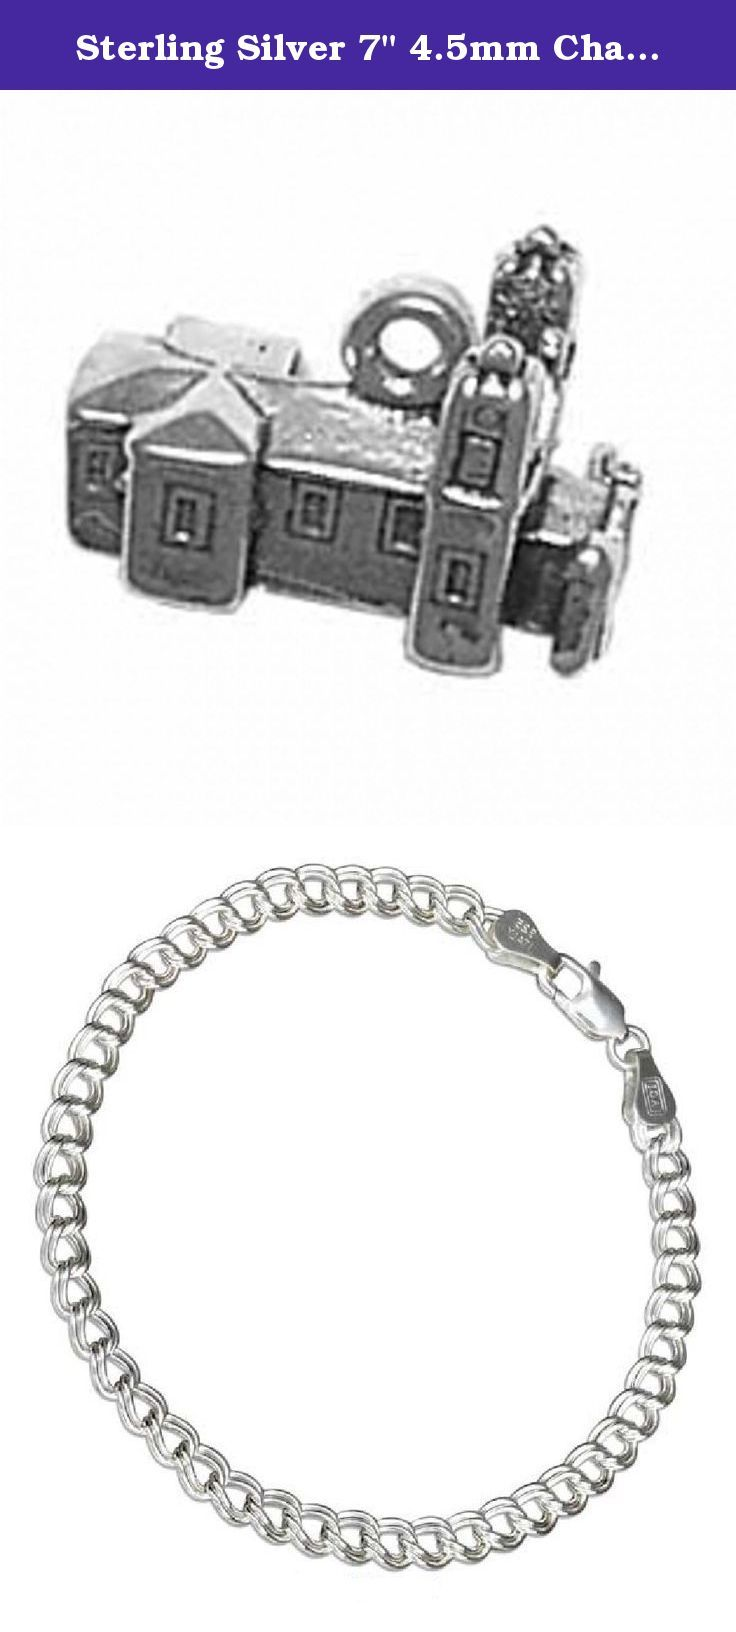 "Sterling Silver 7"" 4.5mm Charm Bracelet With Attached 3D San Felipe de Neri Catholic Church Religious Wedding Vacation Travel Tour Charm. Sterling Silver 7"" 4.5mm Italian Made Charm Bracelet With Attached 3D San Felipe de Neri Catholic Church Charm. Great Charm For Those Who Believes In Catholic Faith Or Who Has Ever Visited It On A Trip To Albuquerque, New Mexico. Material: .925 Sterling Silver Dimensions: 3D Hollow Bottom Charm Height: 4/8"" Length: 6/8"" Width (Thickness): 3/8"" Units…"